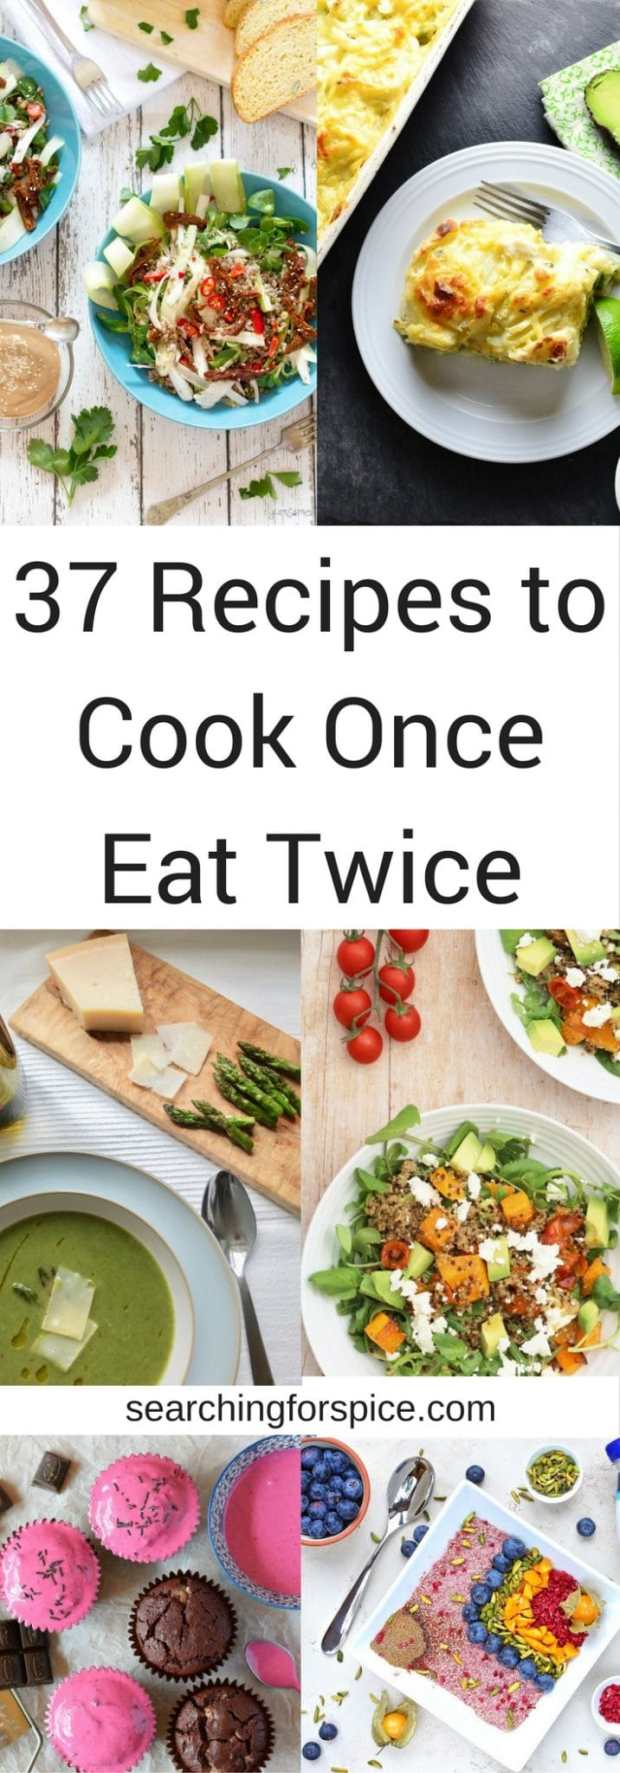 37 recipes that fit the cook once eat twice theme. Collection of savoury and sweet recipes, meat-based as well as vegetarian and vegan ideas. Come and get some meal planning inspiration